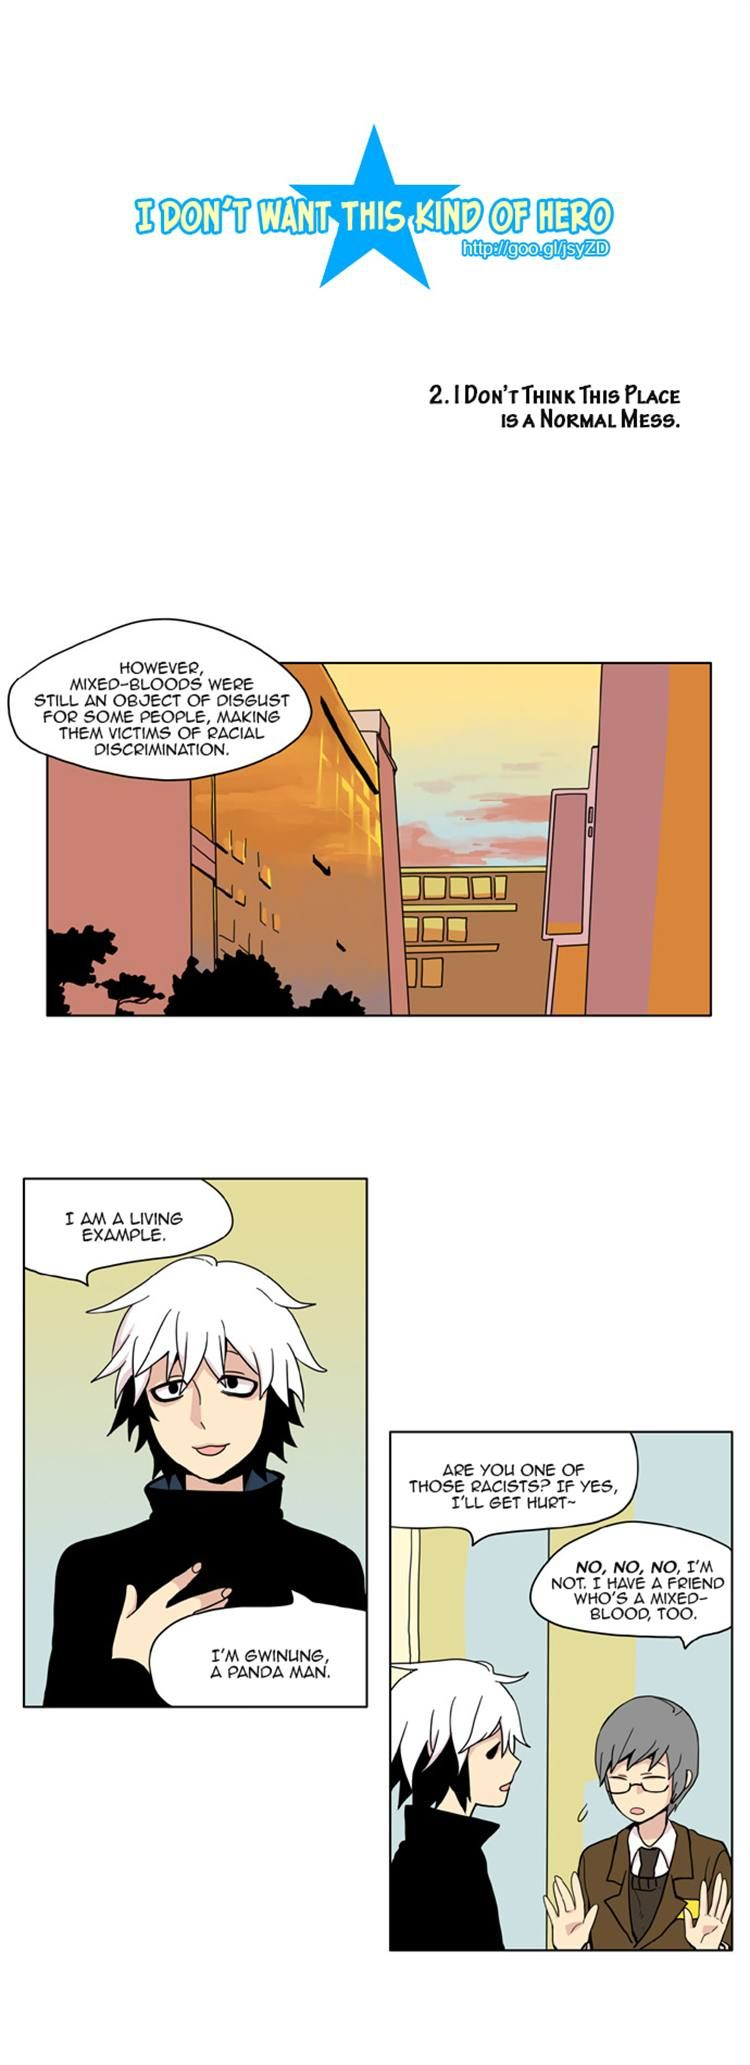 I Don't Want This Kind of Hero 2 Page 2